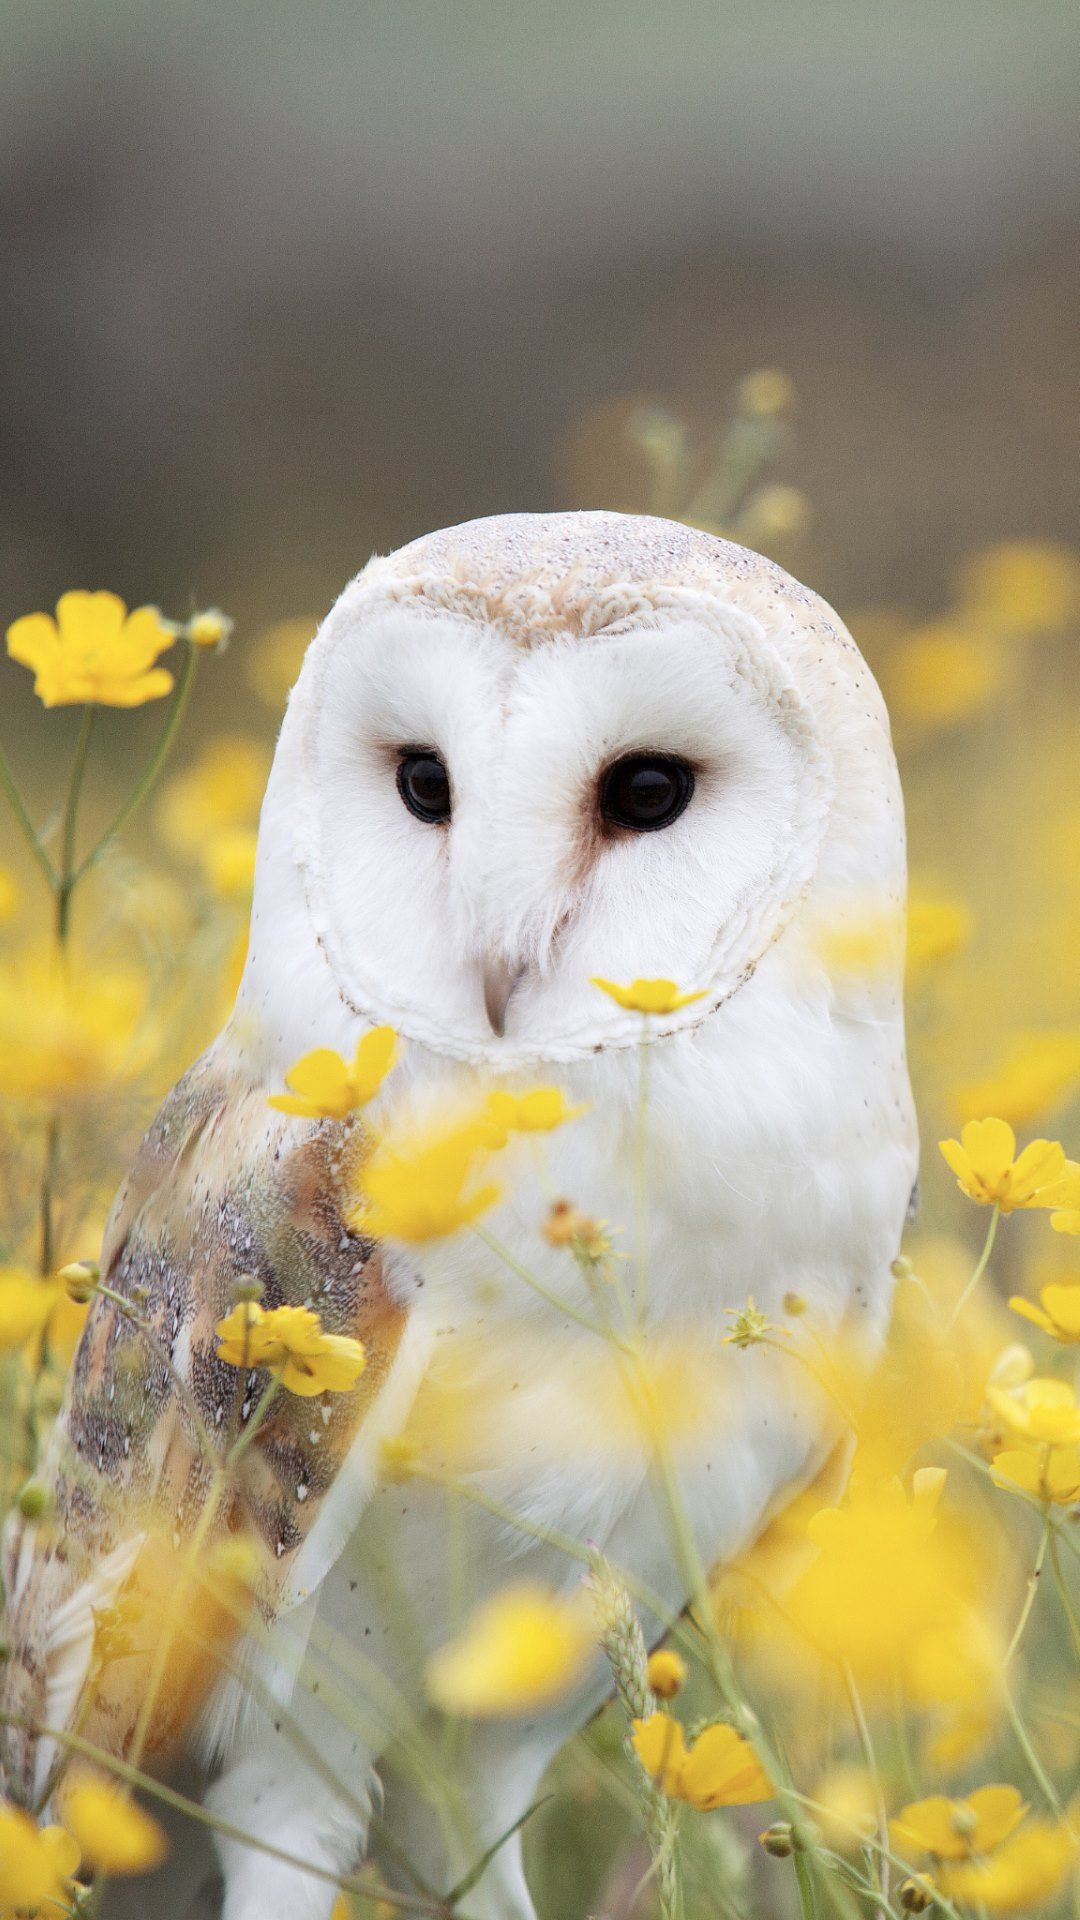 1080x1920 Best 49+ Barn Owl Wallpaper on HipWallpaper | Old Barn ...